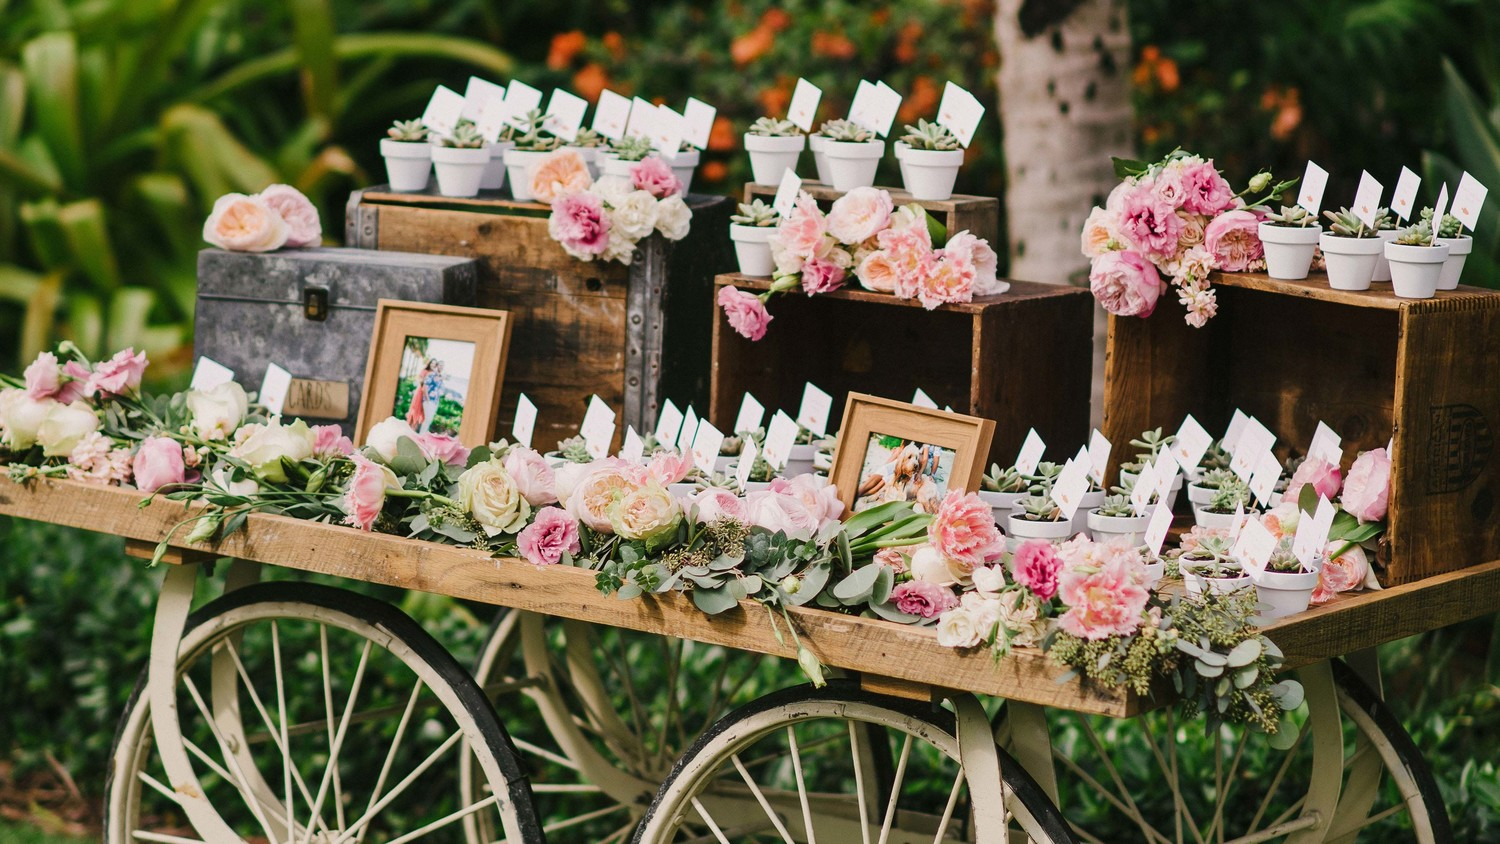 Martha Stewart Wedding Gift Ideas: 50 Creative Wedding Favors That Will Delight Your Guests